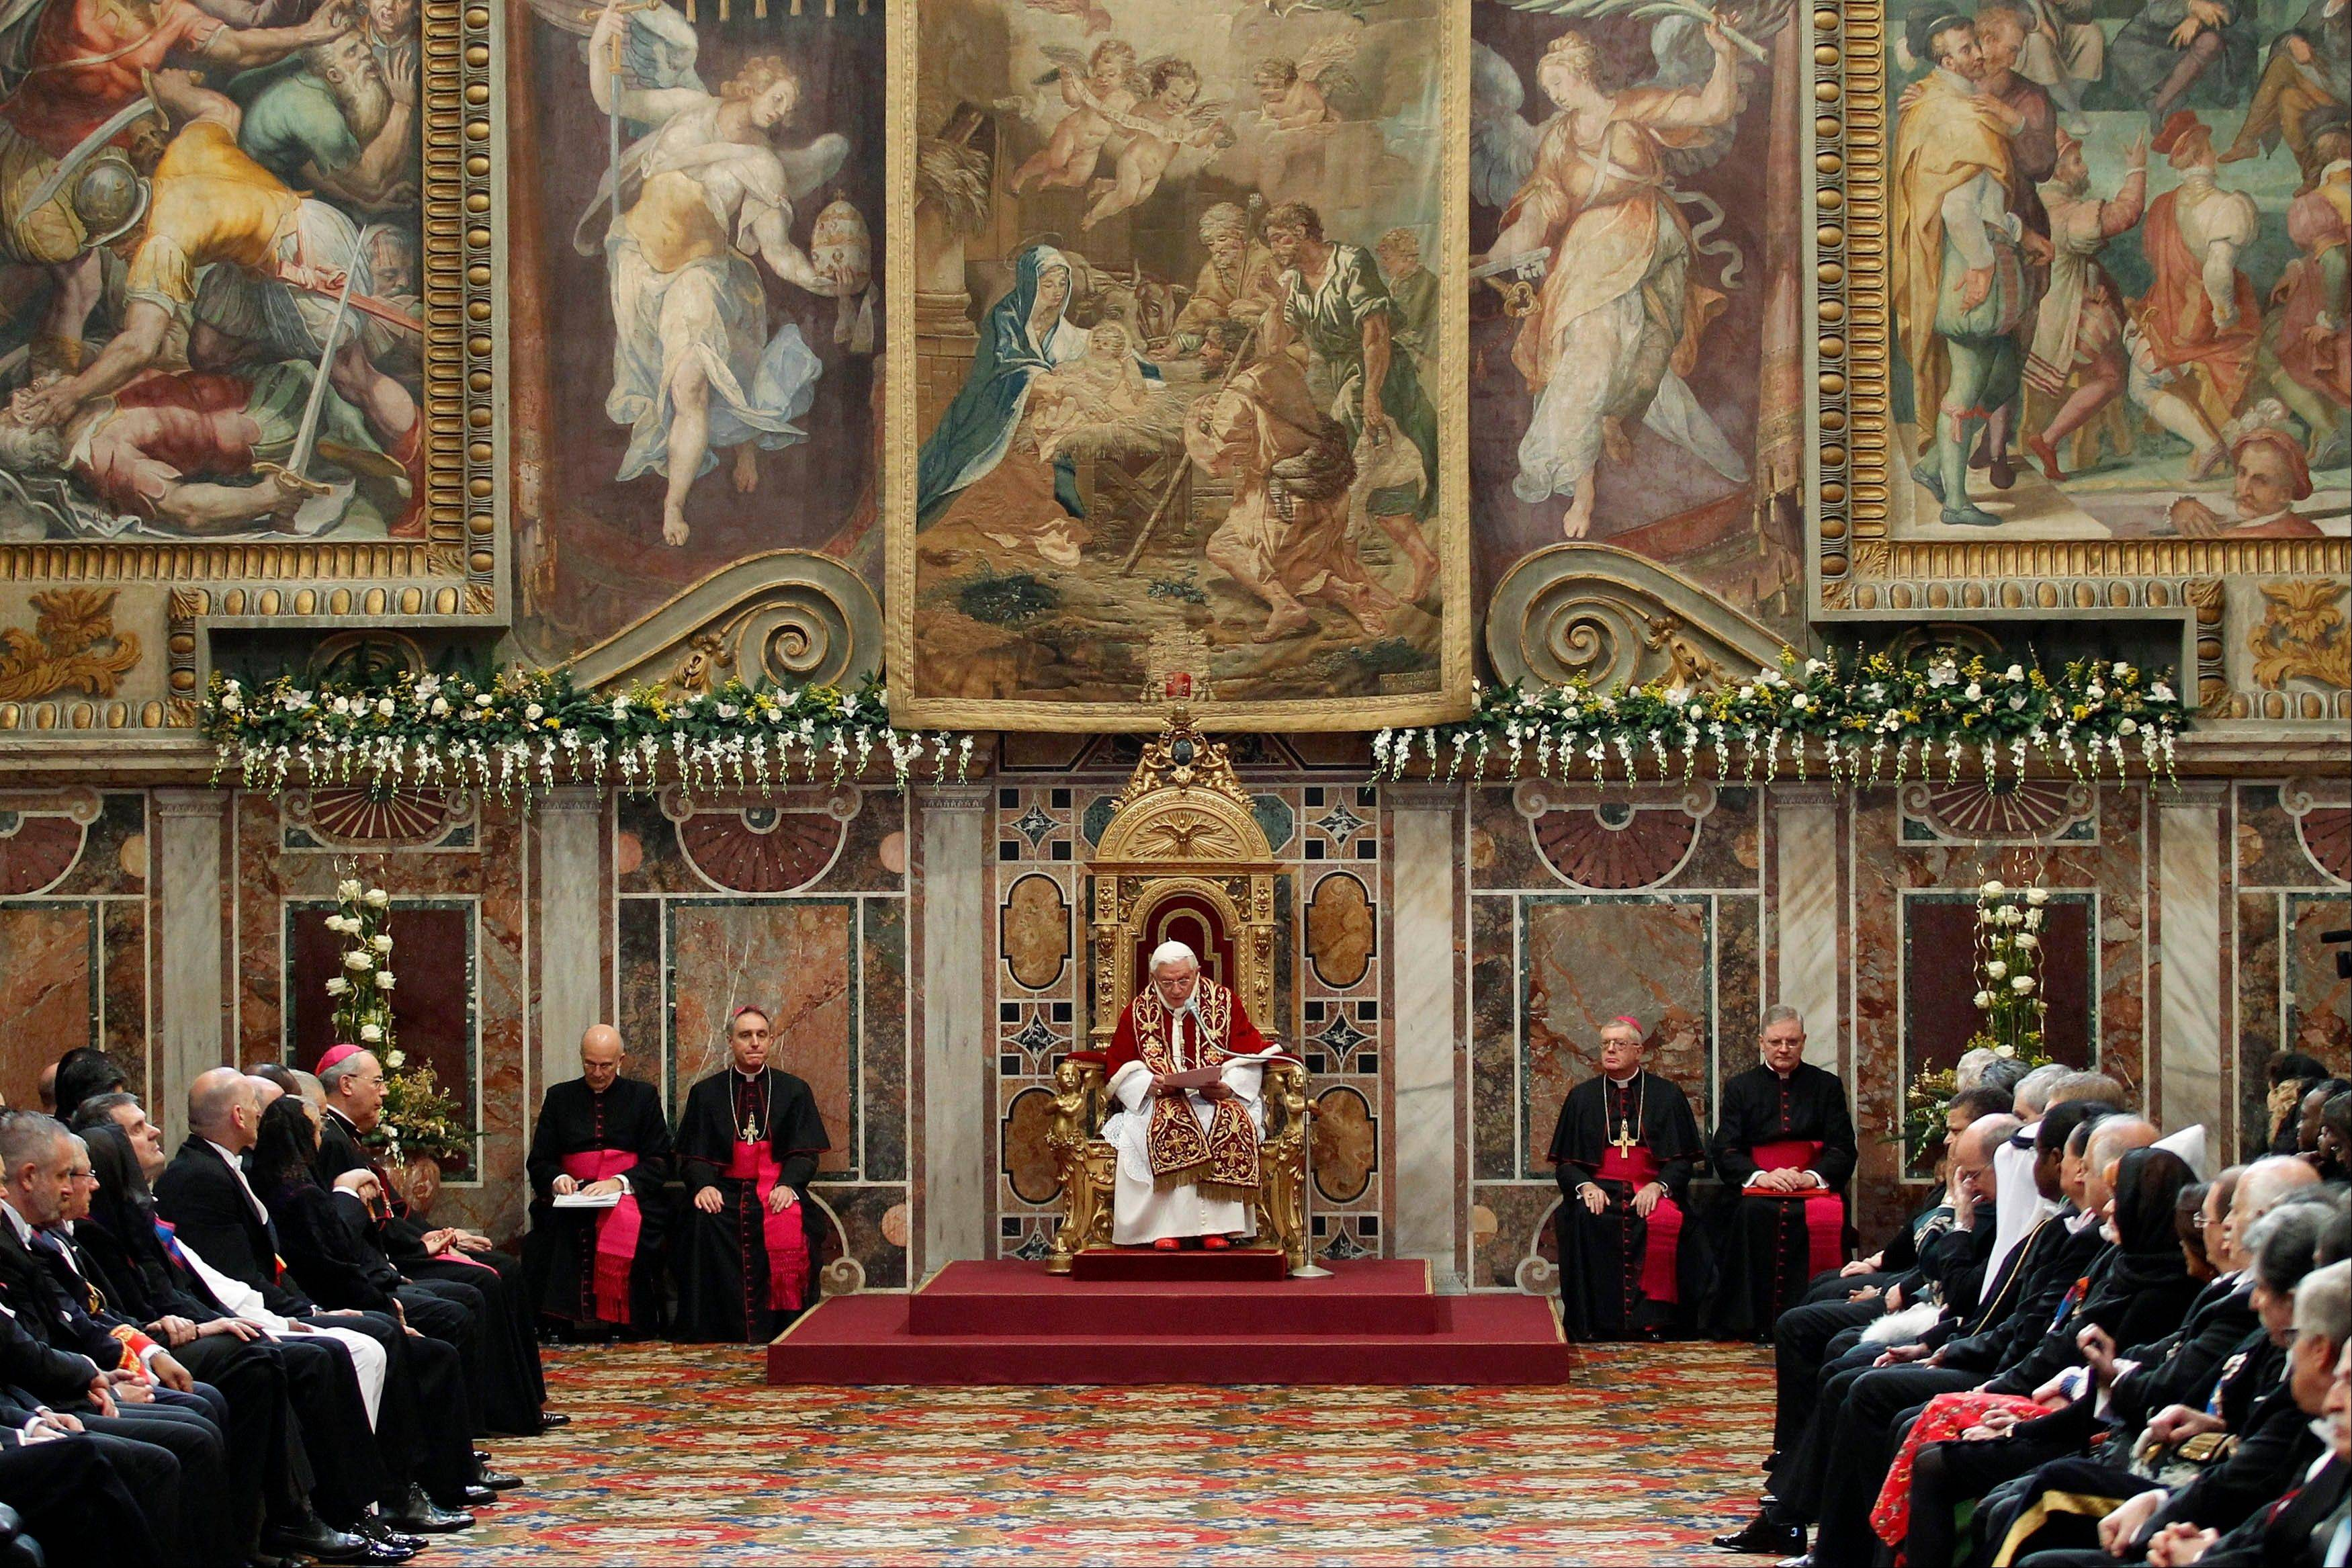 Pope Benedict XVI delivers his speech during an audience with foreign ambassadors to the Holy See, at the Vatican, Monday, Jan. 7, 2013.